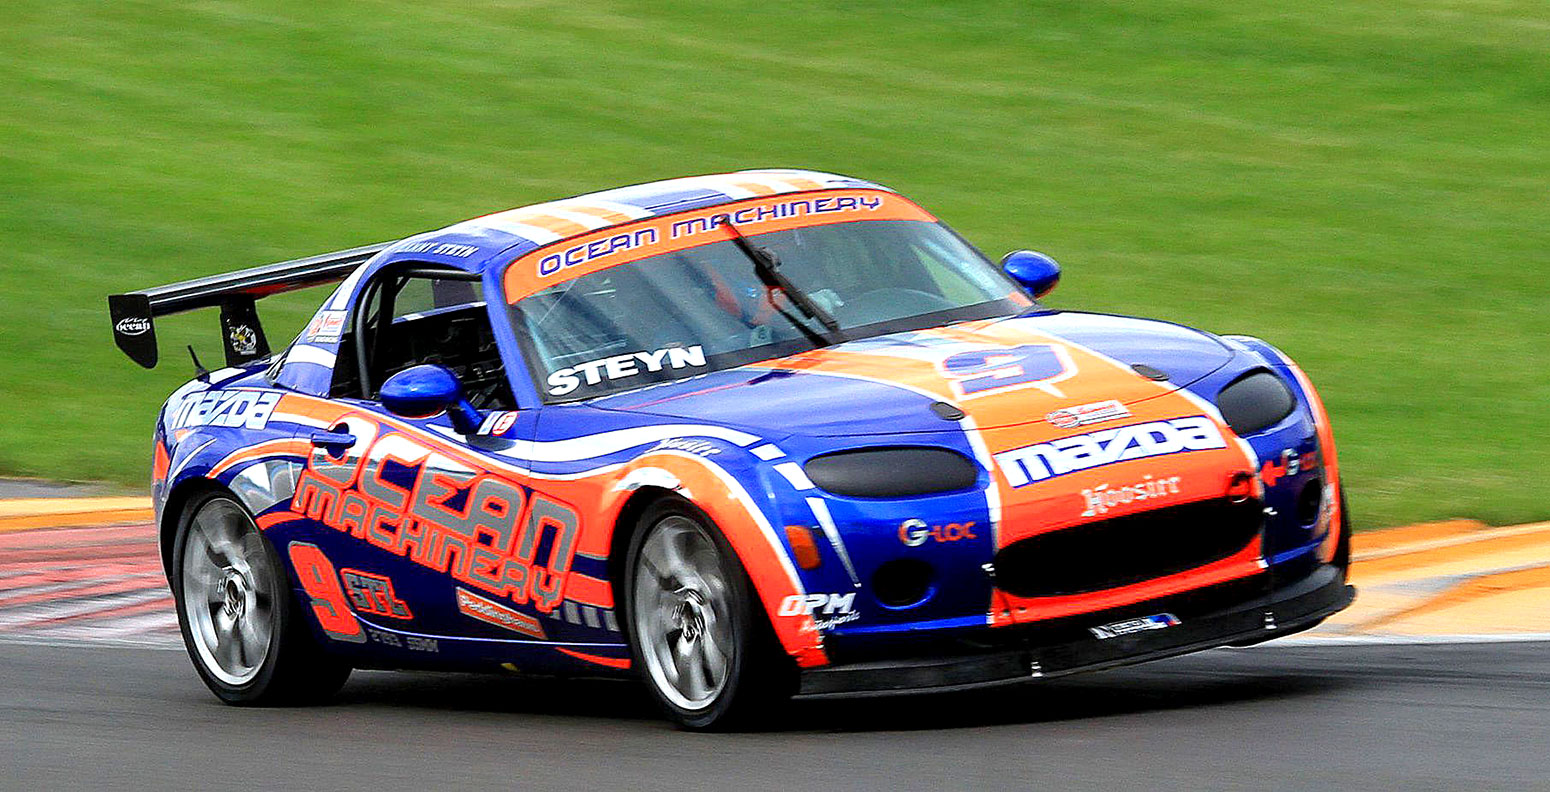 Danny Steyn setting another lap record in the STL class Ocean Machinery Mazda MX-5